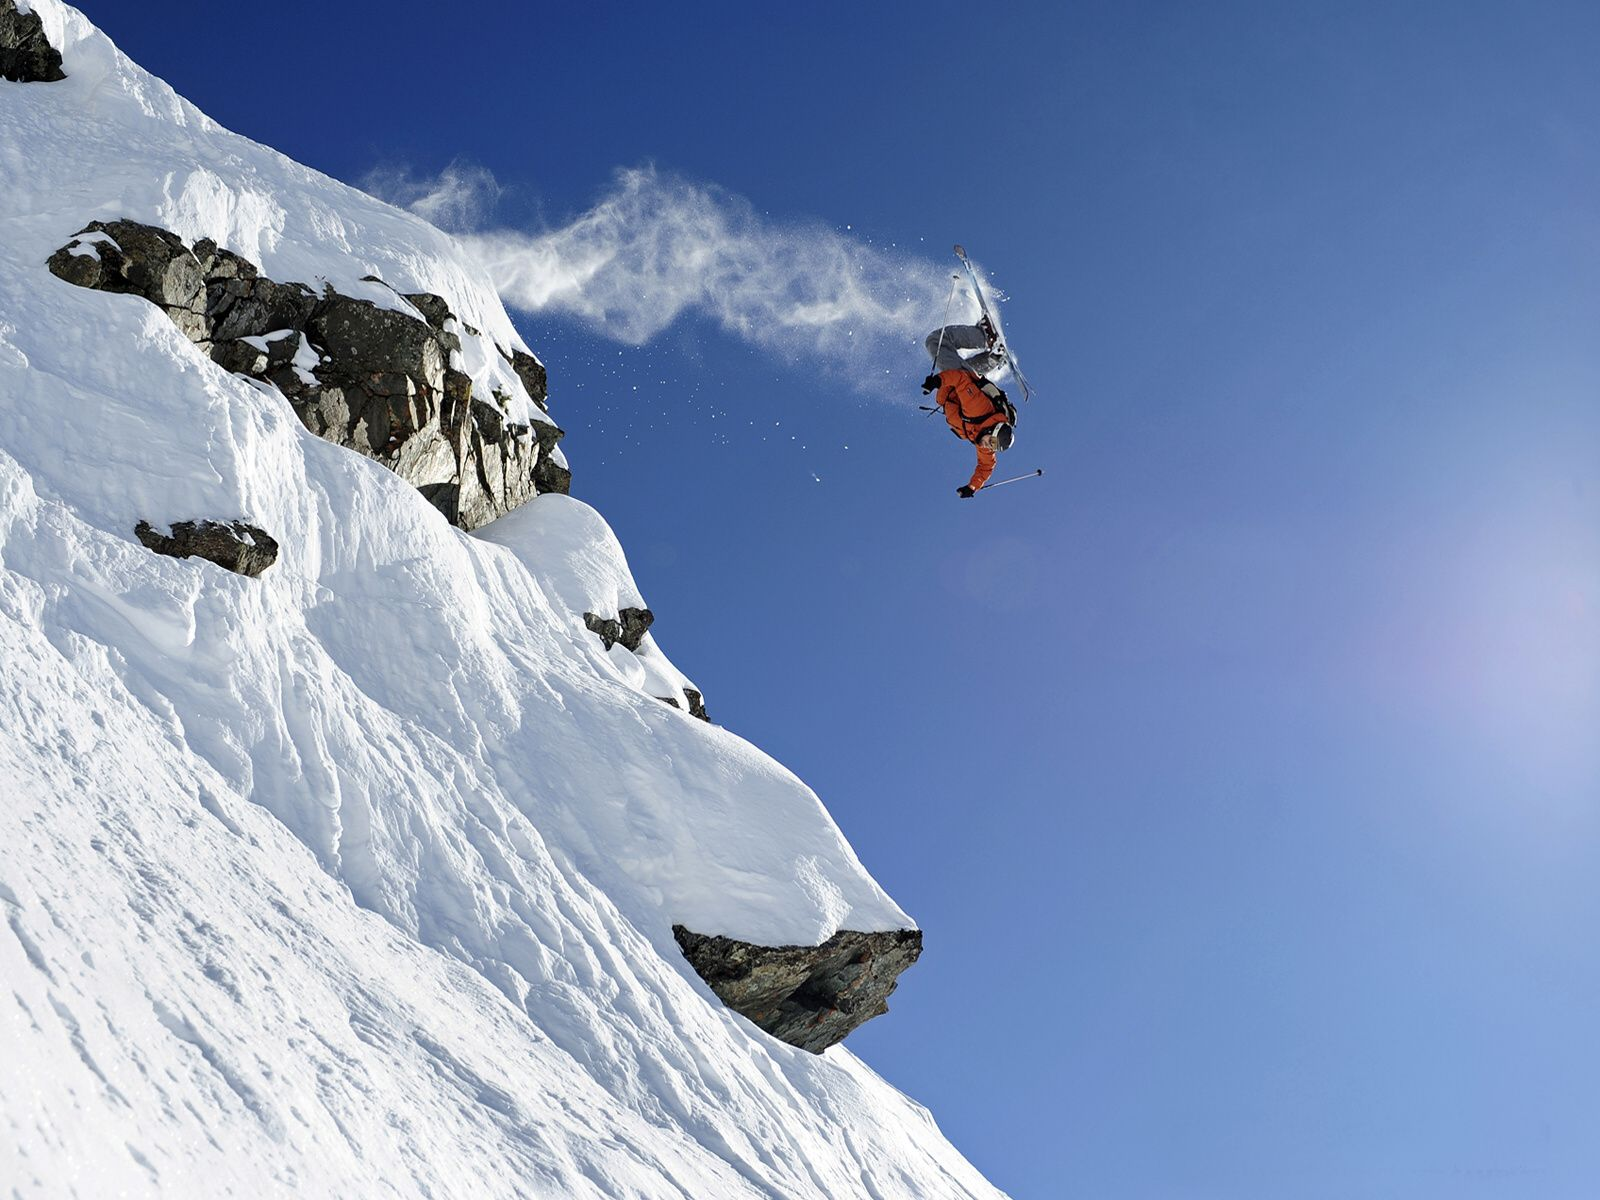 Extreme Skiing Wallpaper: Sports Wallpapers Download